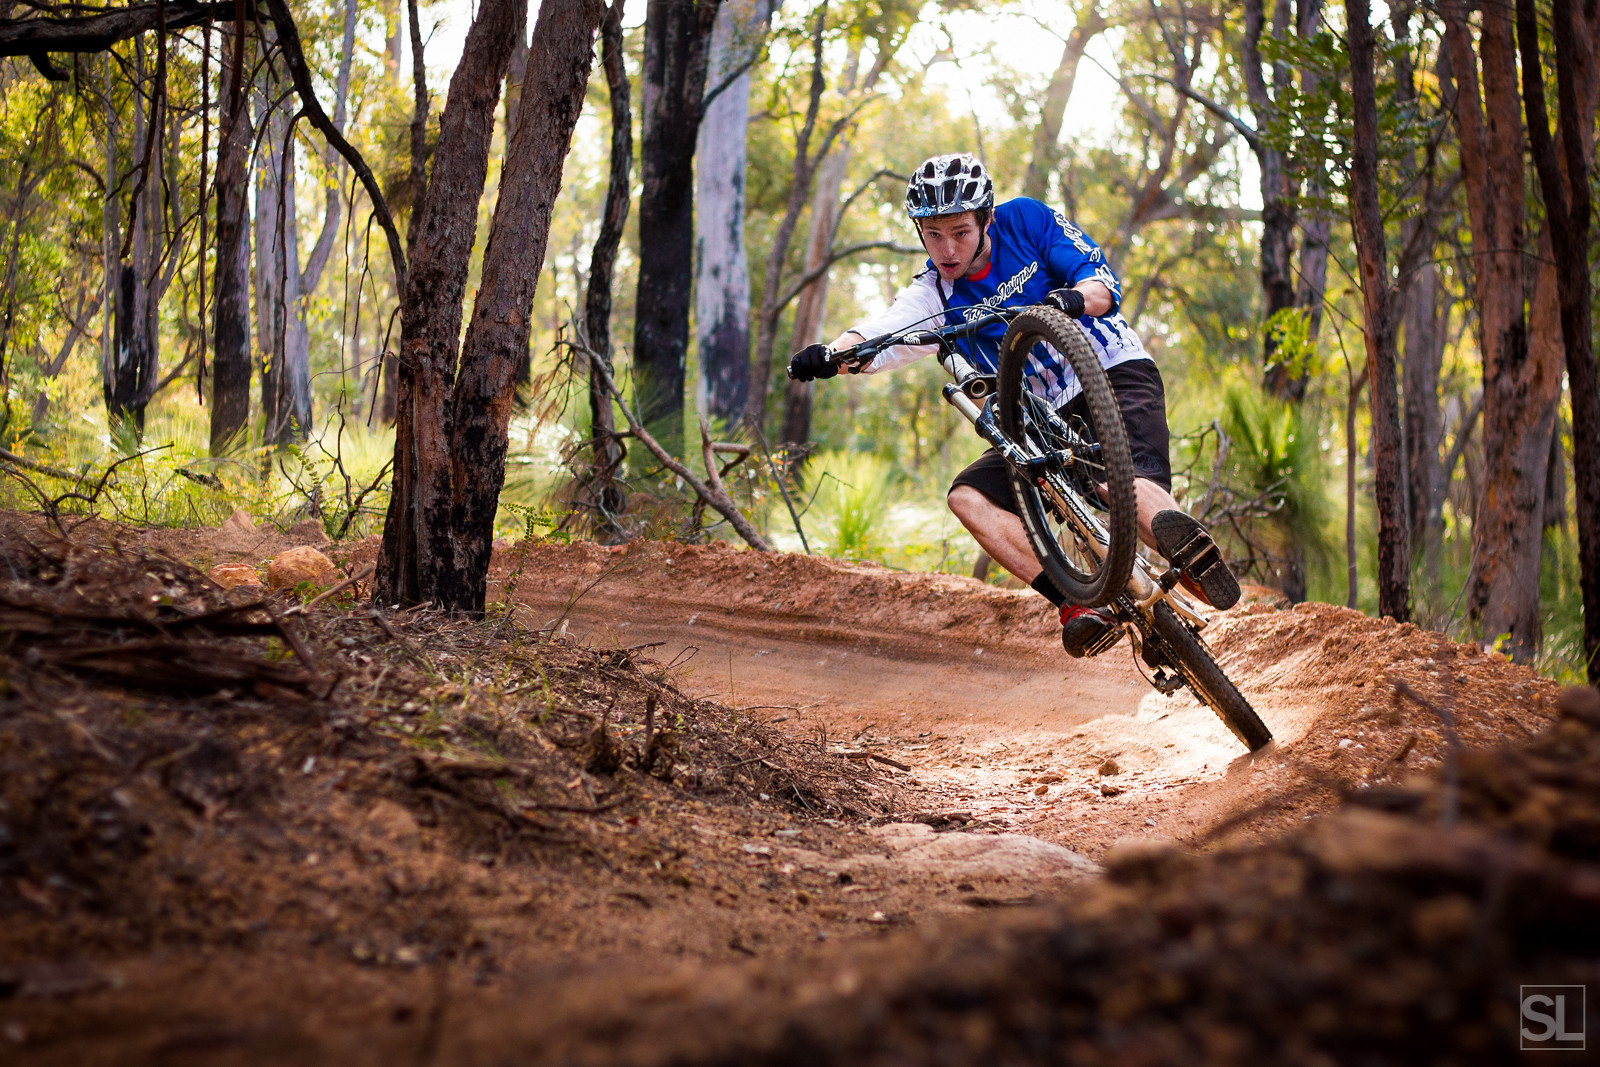 playing on the new trail - Chamakazi - Mountain Biking Pictures - Vital MTB